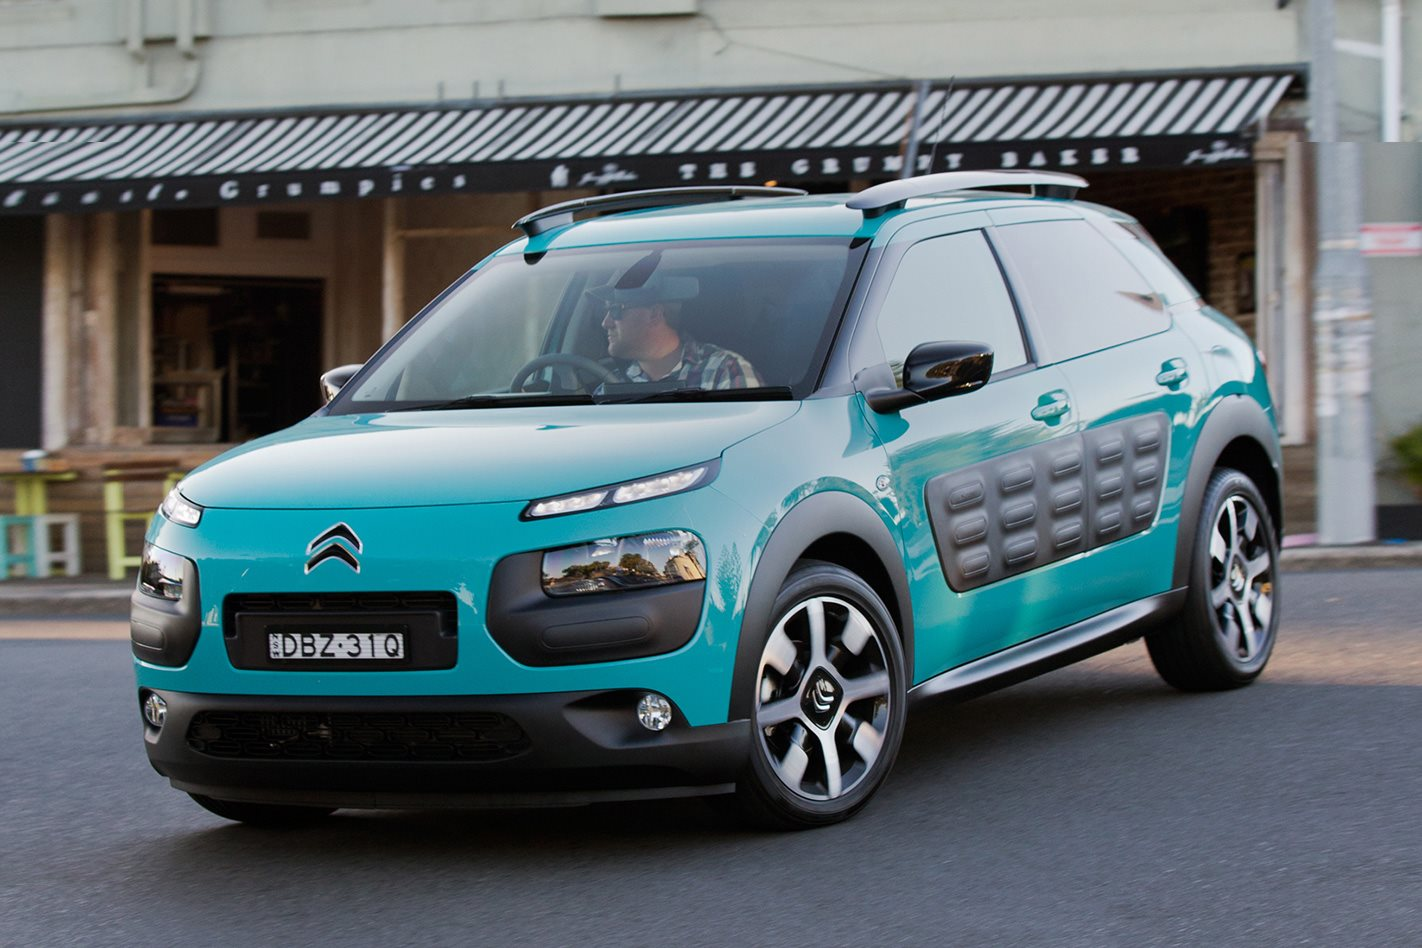 citroen c4 cactus exclusive 1 6 e hdi quick review. Black Bedroom Furniture Sets. Home Design Ideas